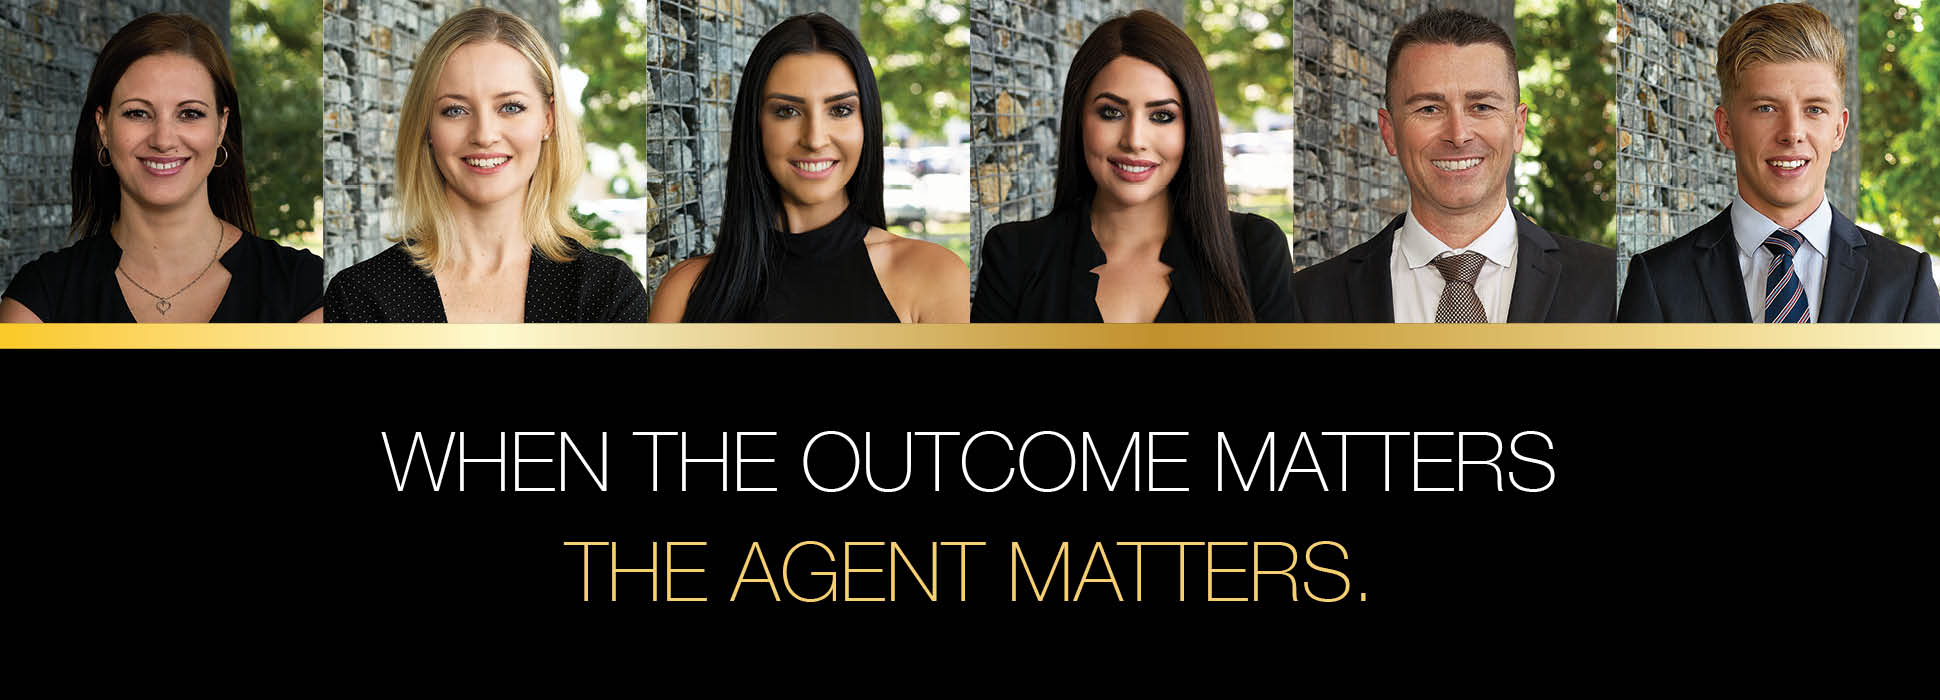 the-industry-estate-agents-banner-agents